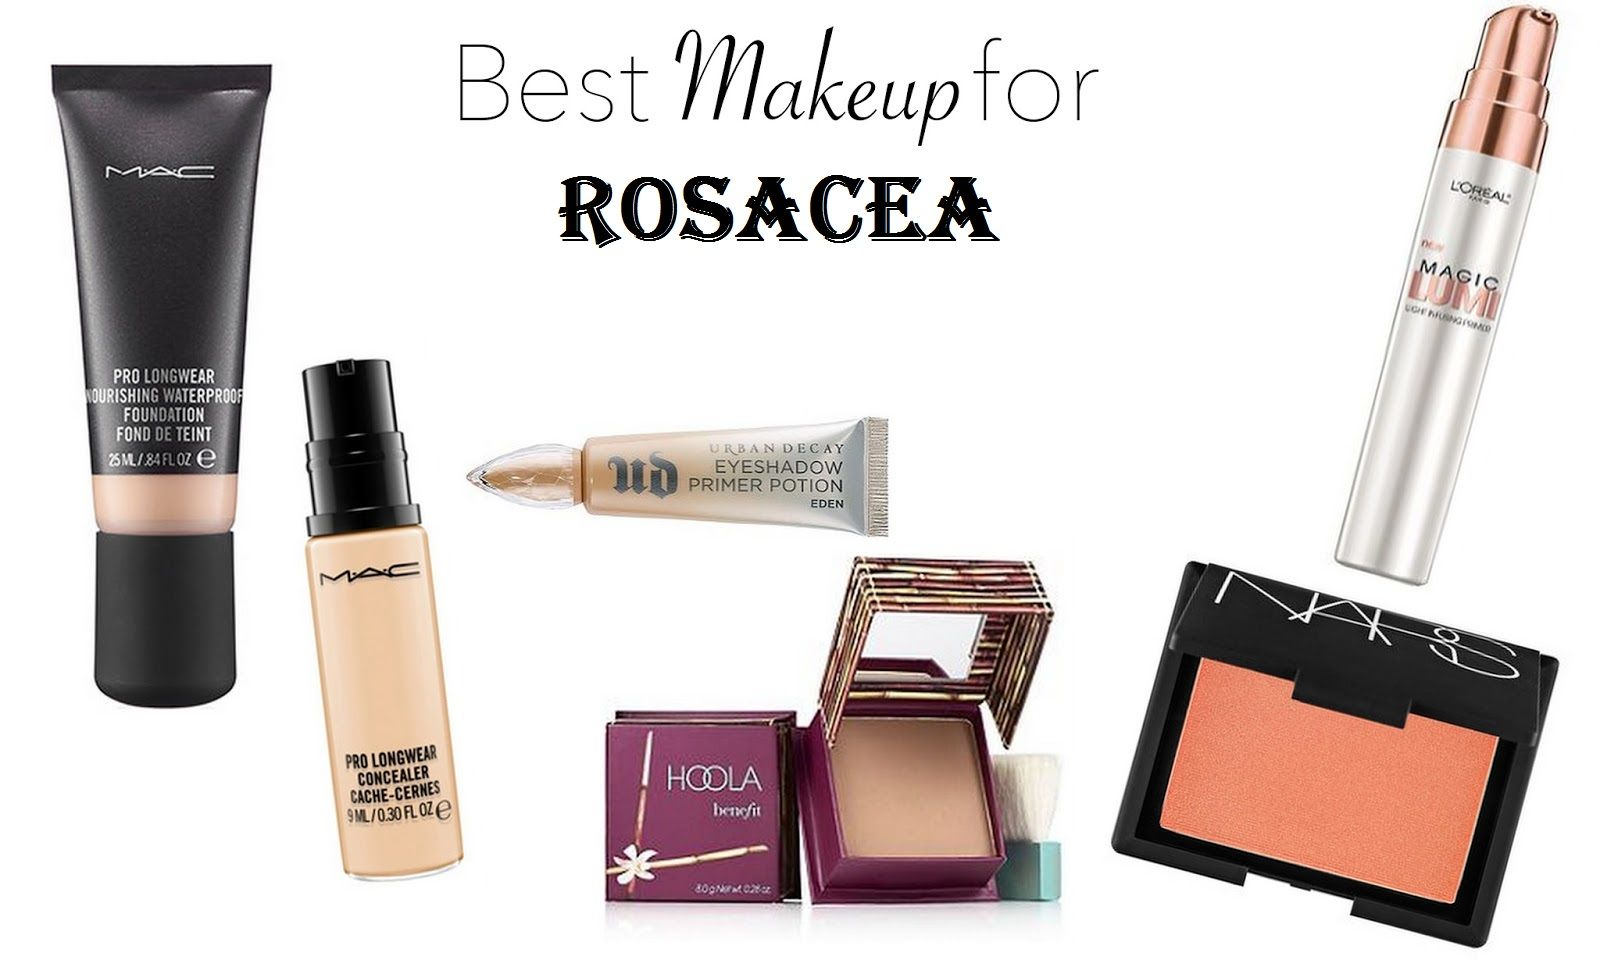 Best makeup to conceal Rosacea focuses on not only